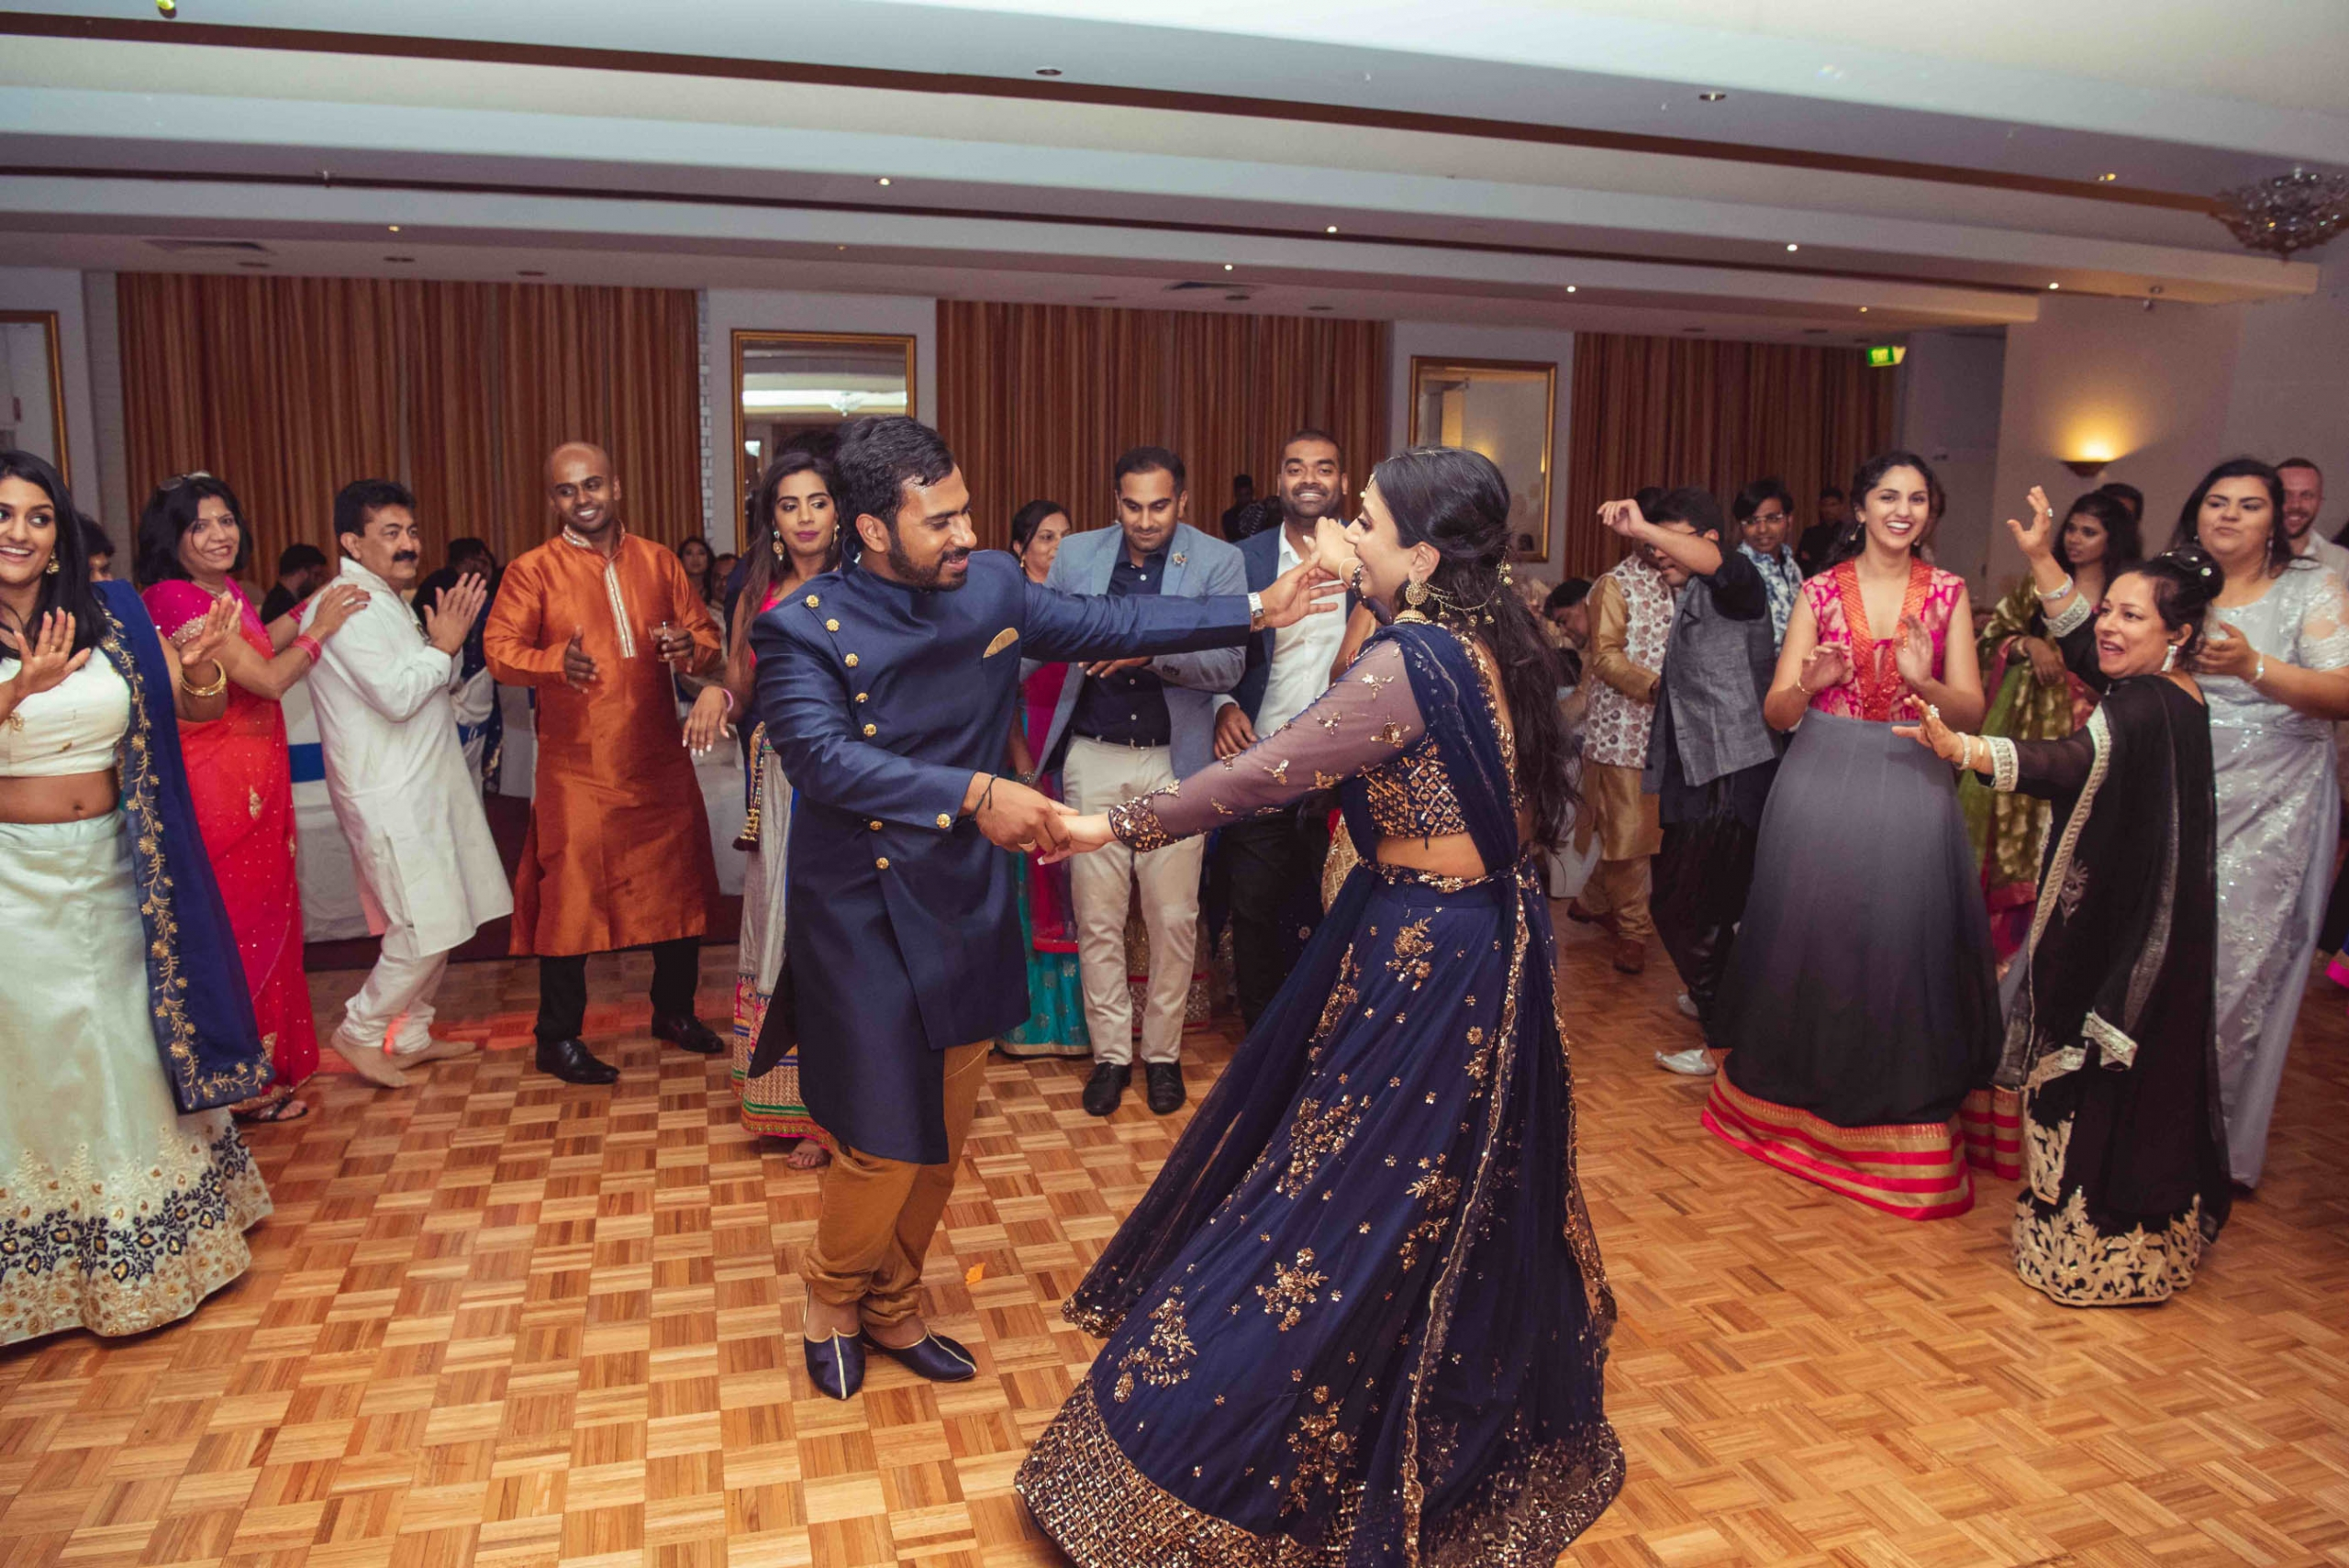 Melbourne couple, Ron and Kanika on their Sangeet night. Photography captured by Rolling Canvas.